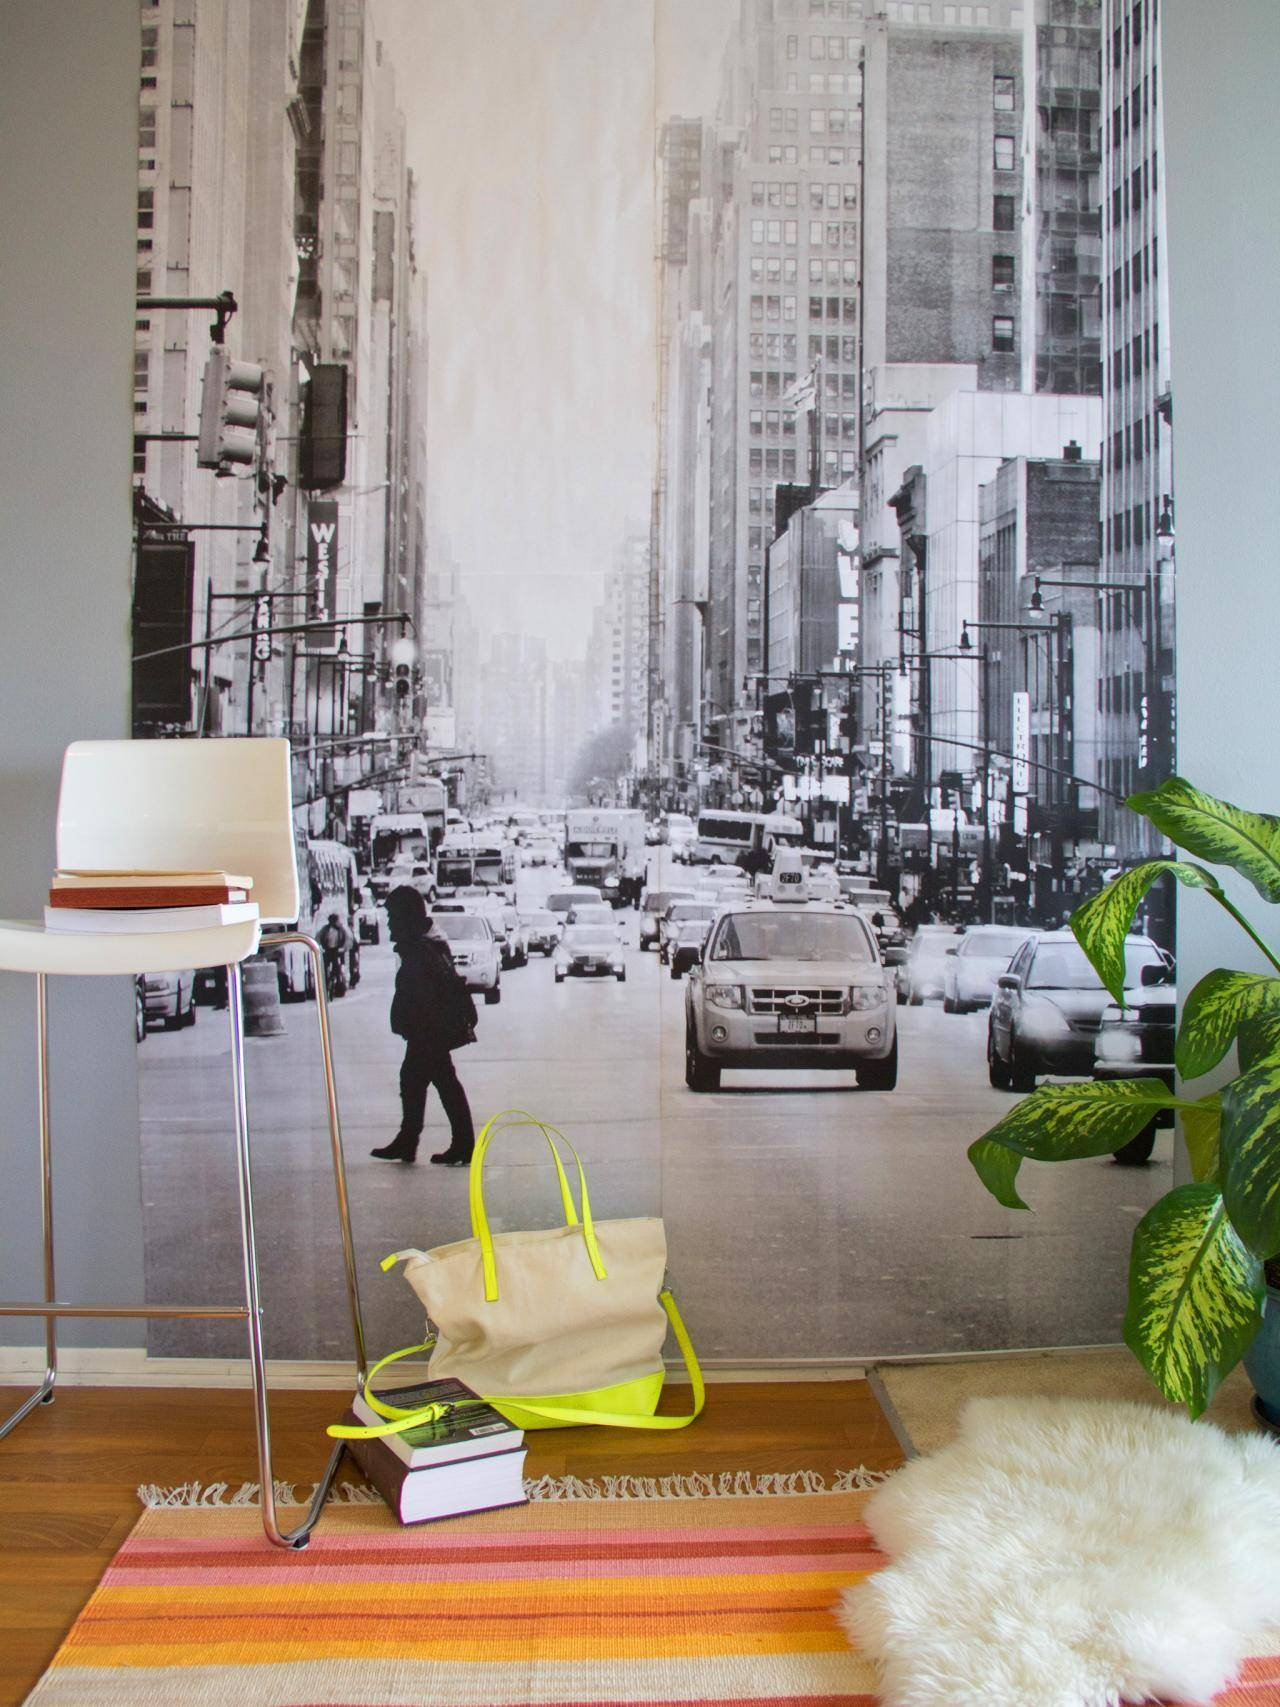 7 Diy Art Projects To Try | Hgtv's Decorating & Design Blog | Hgtv Intended For 2018 Big Cheap Wall Art (View 10 of 20)